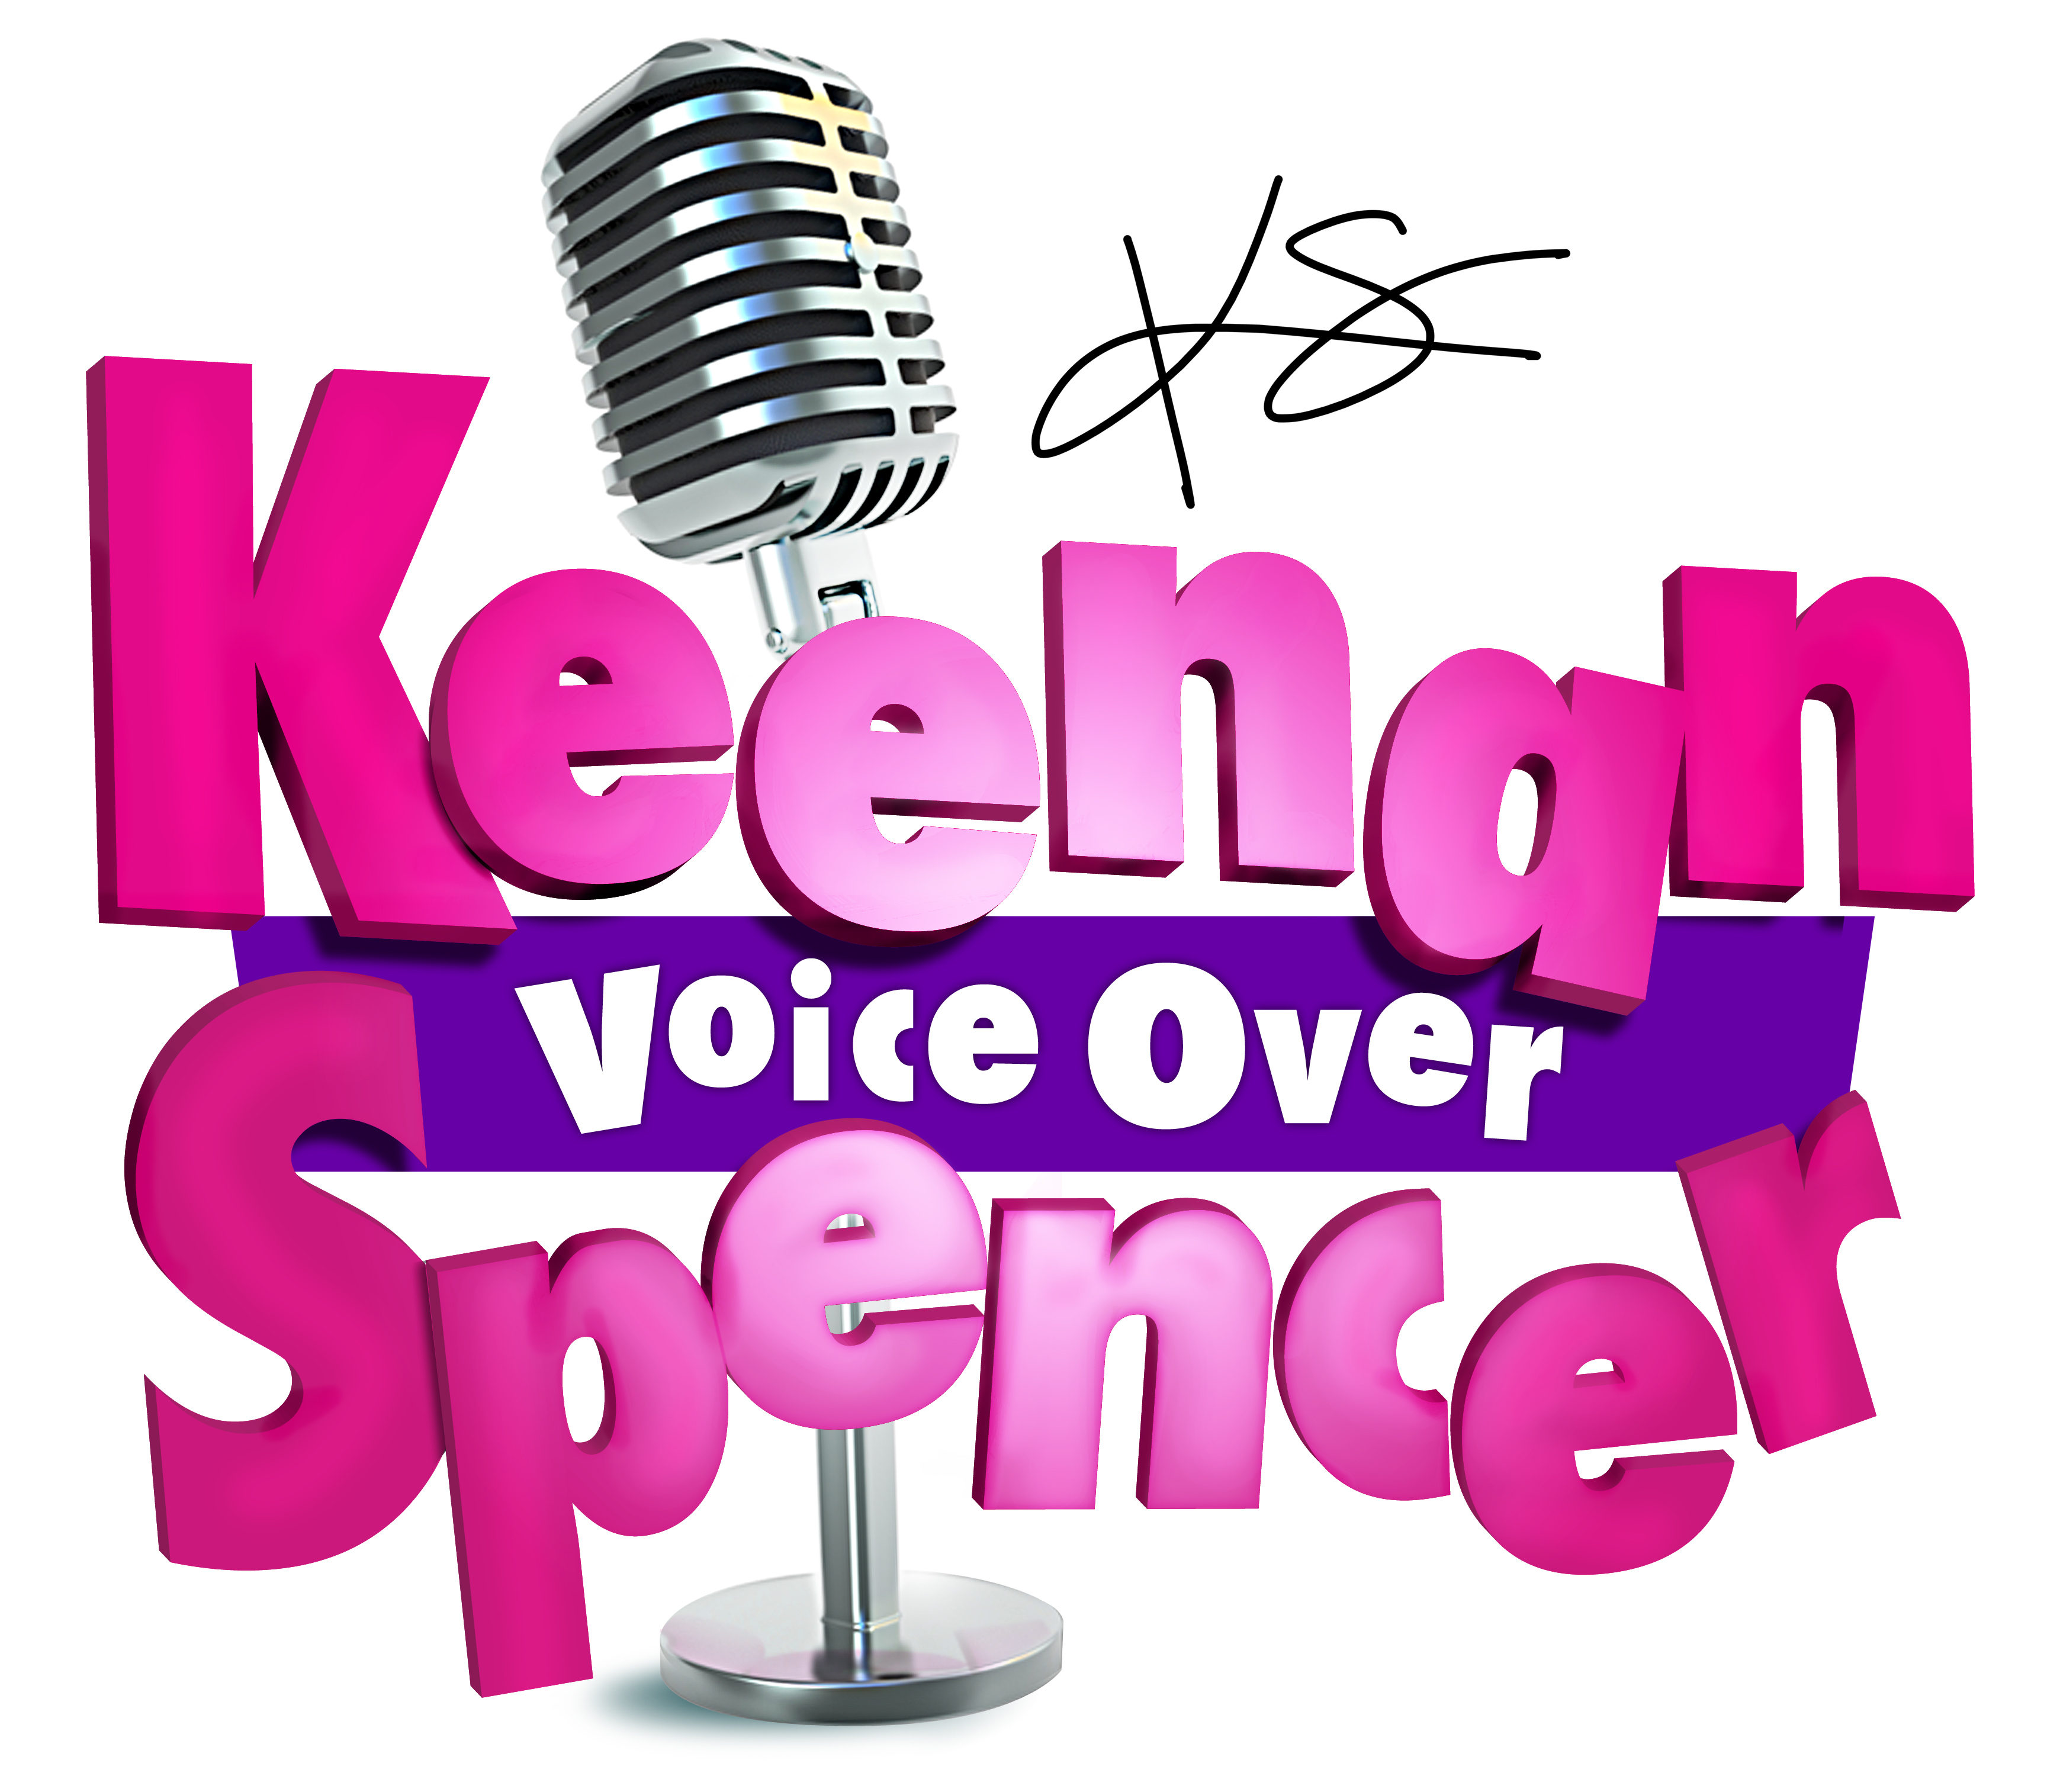 Keenan Spencer voice over